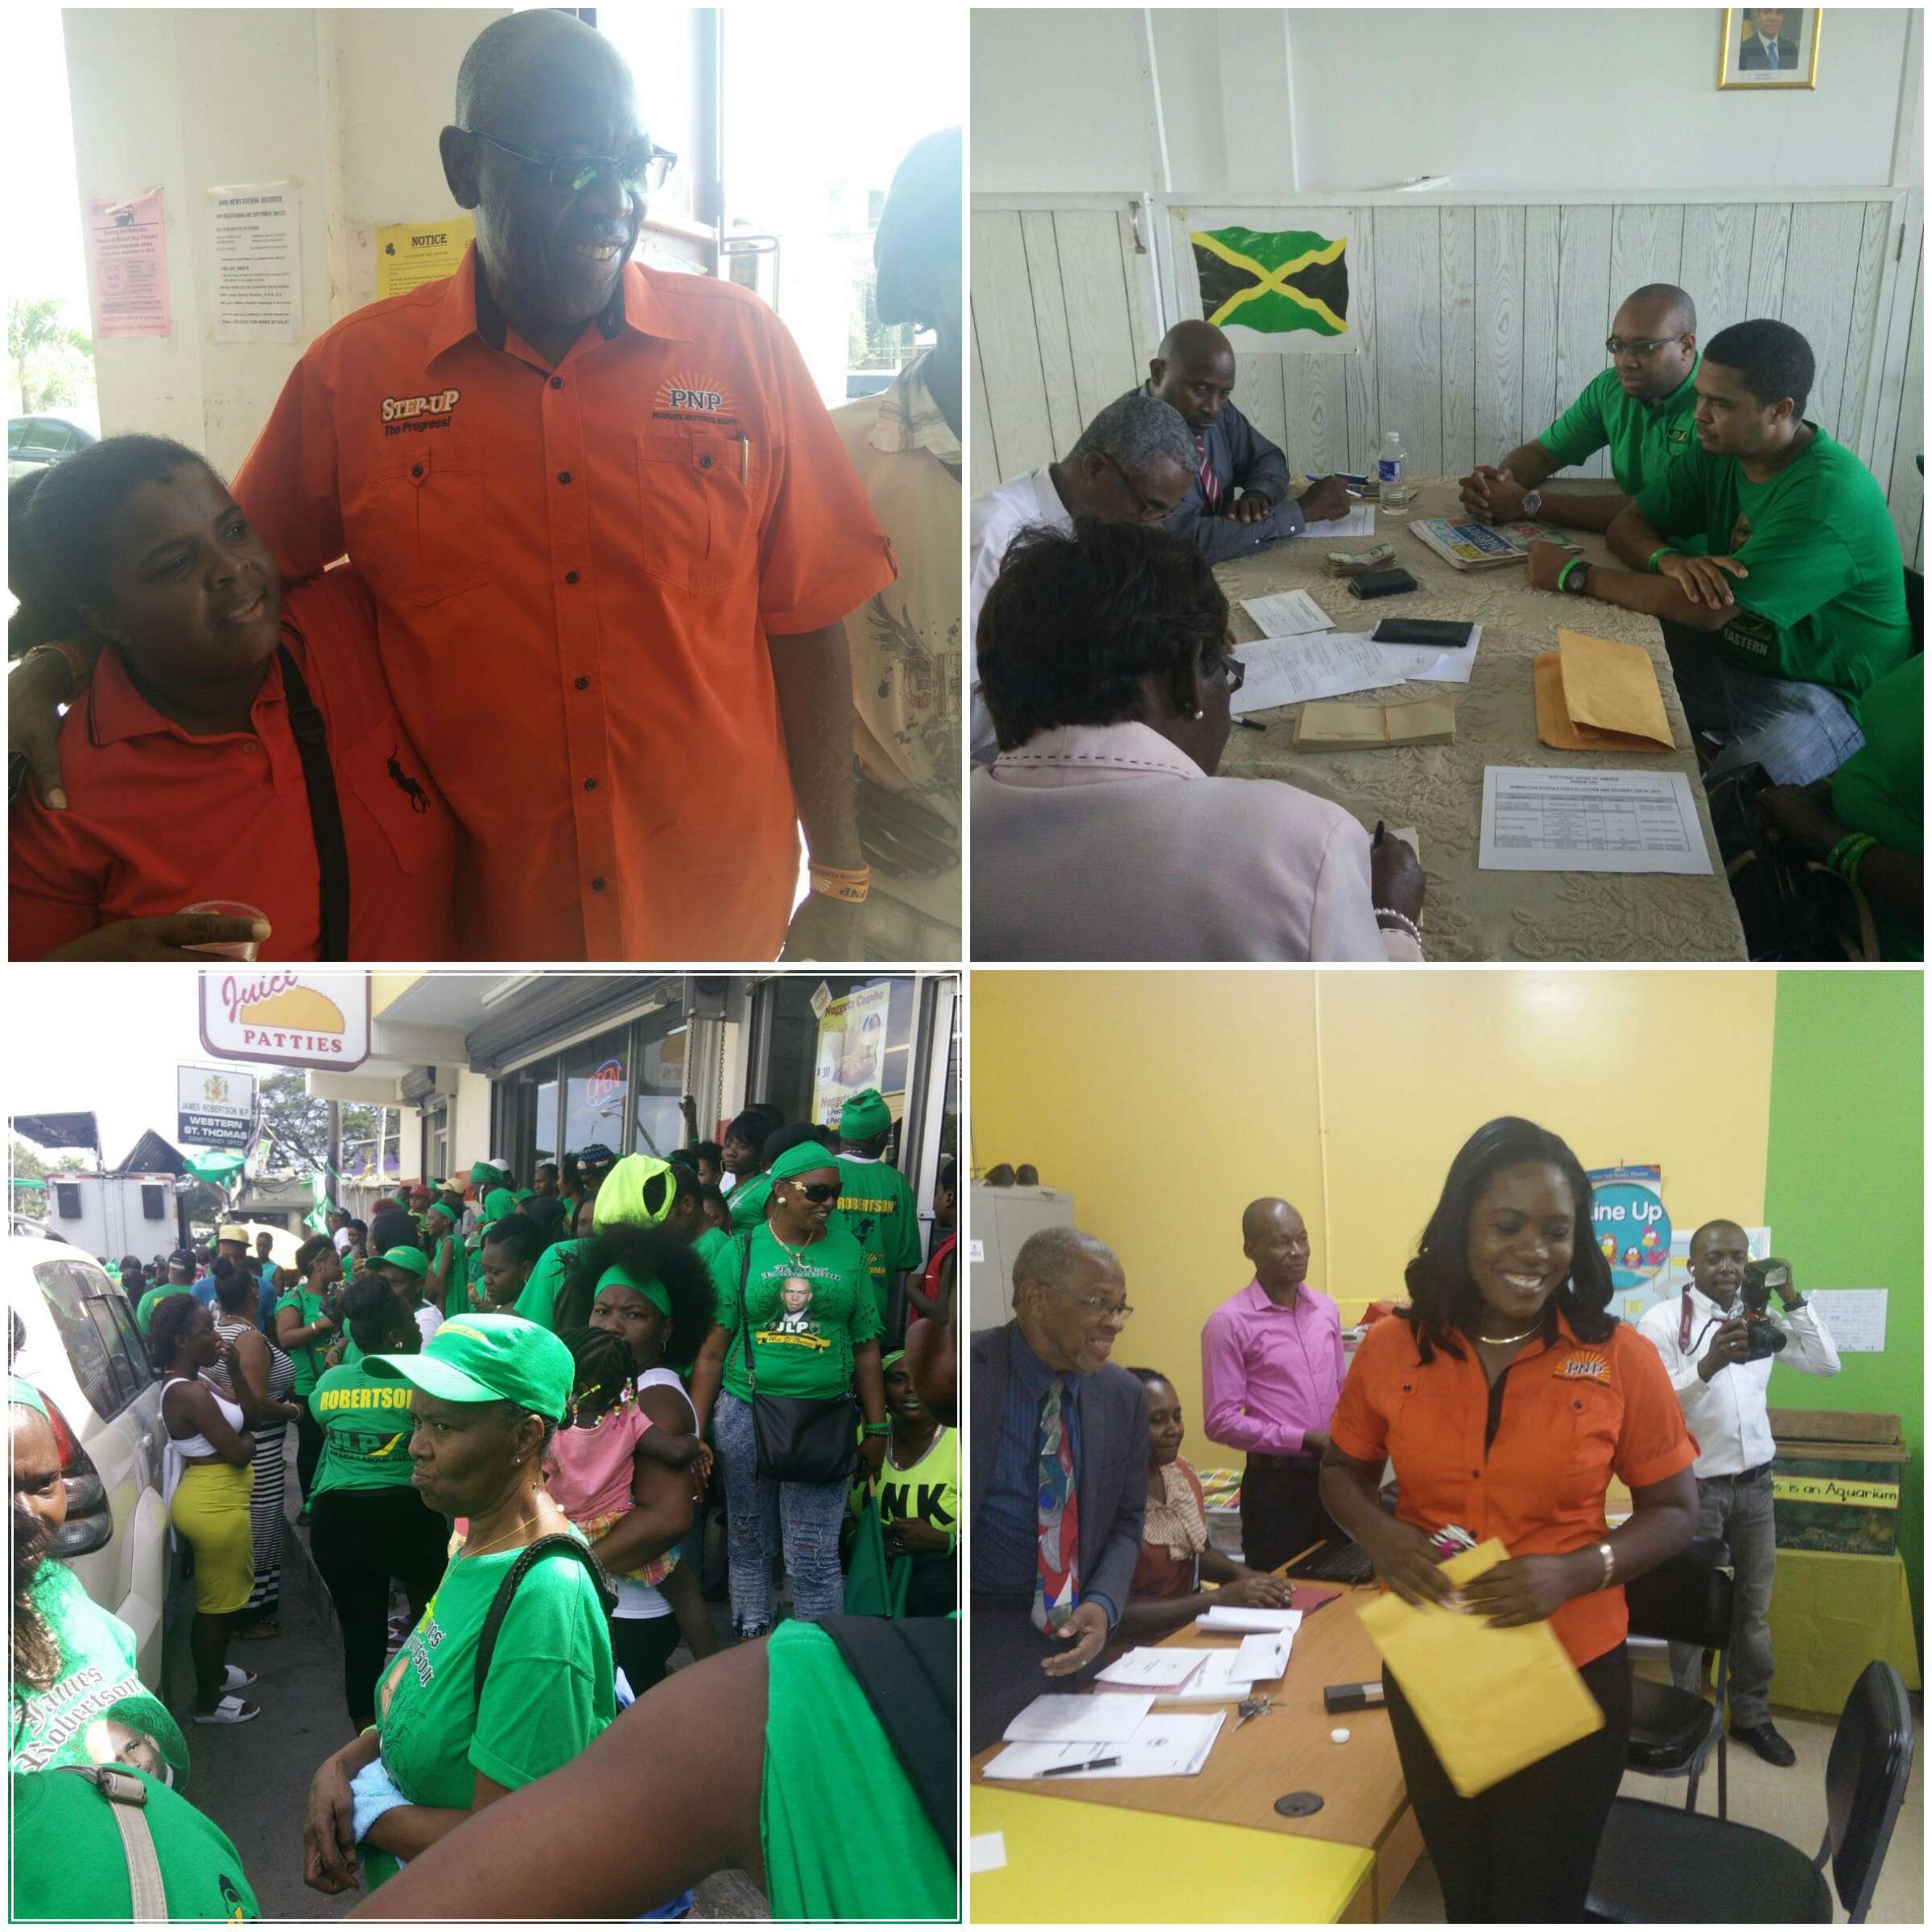 PNP & JLP Flex Muscles in St Thomas